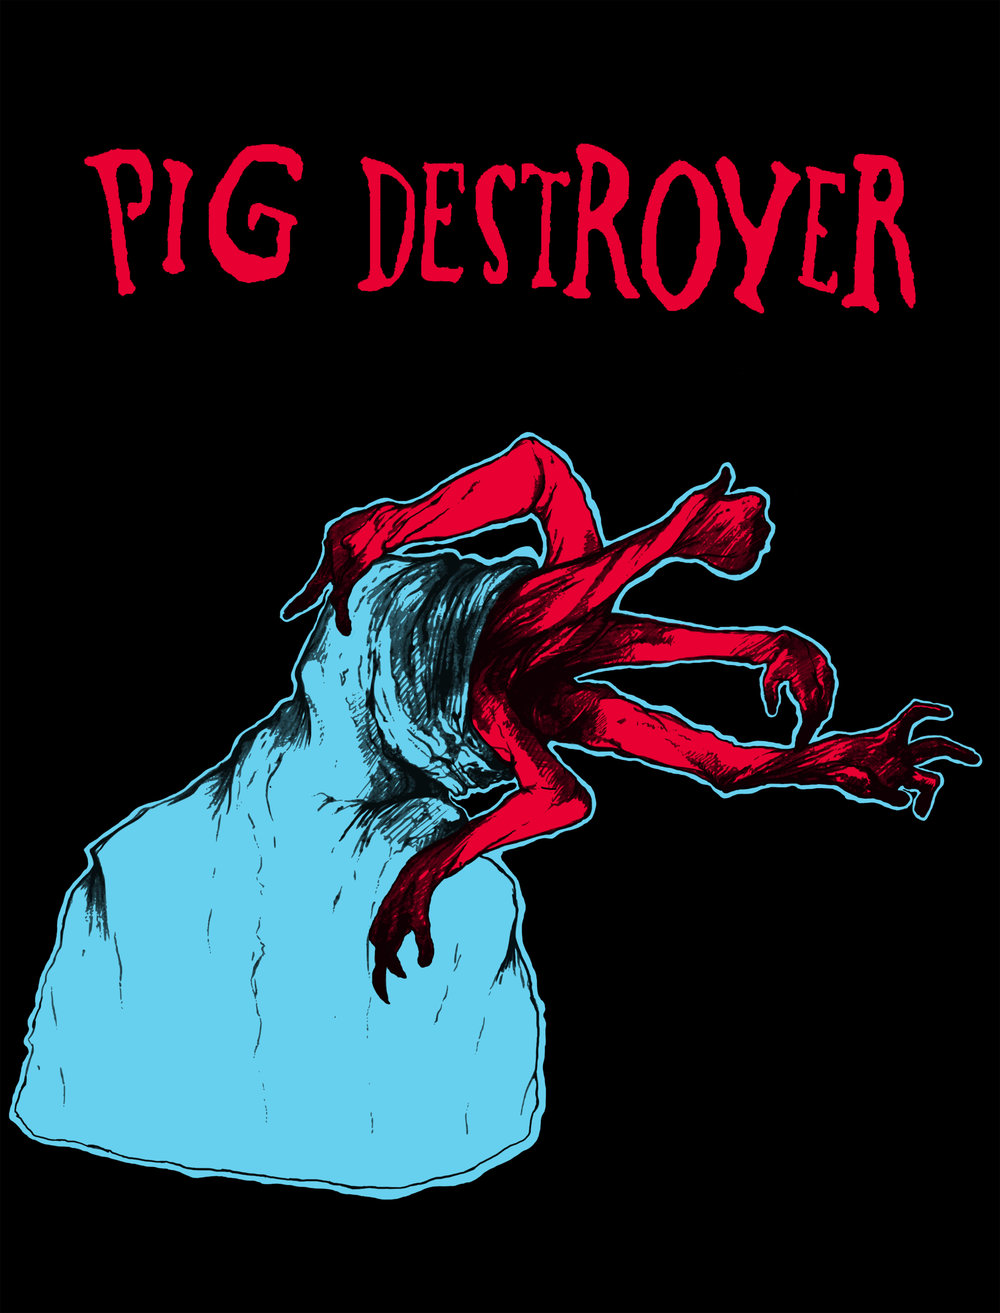 2018. Shirt design for  Pig Destroyer .